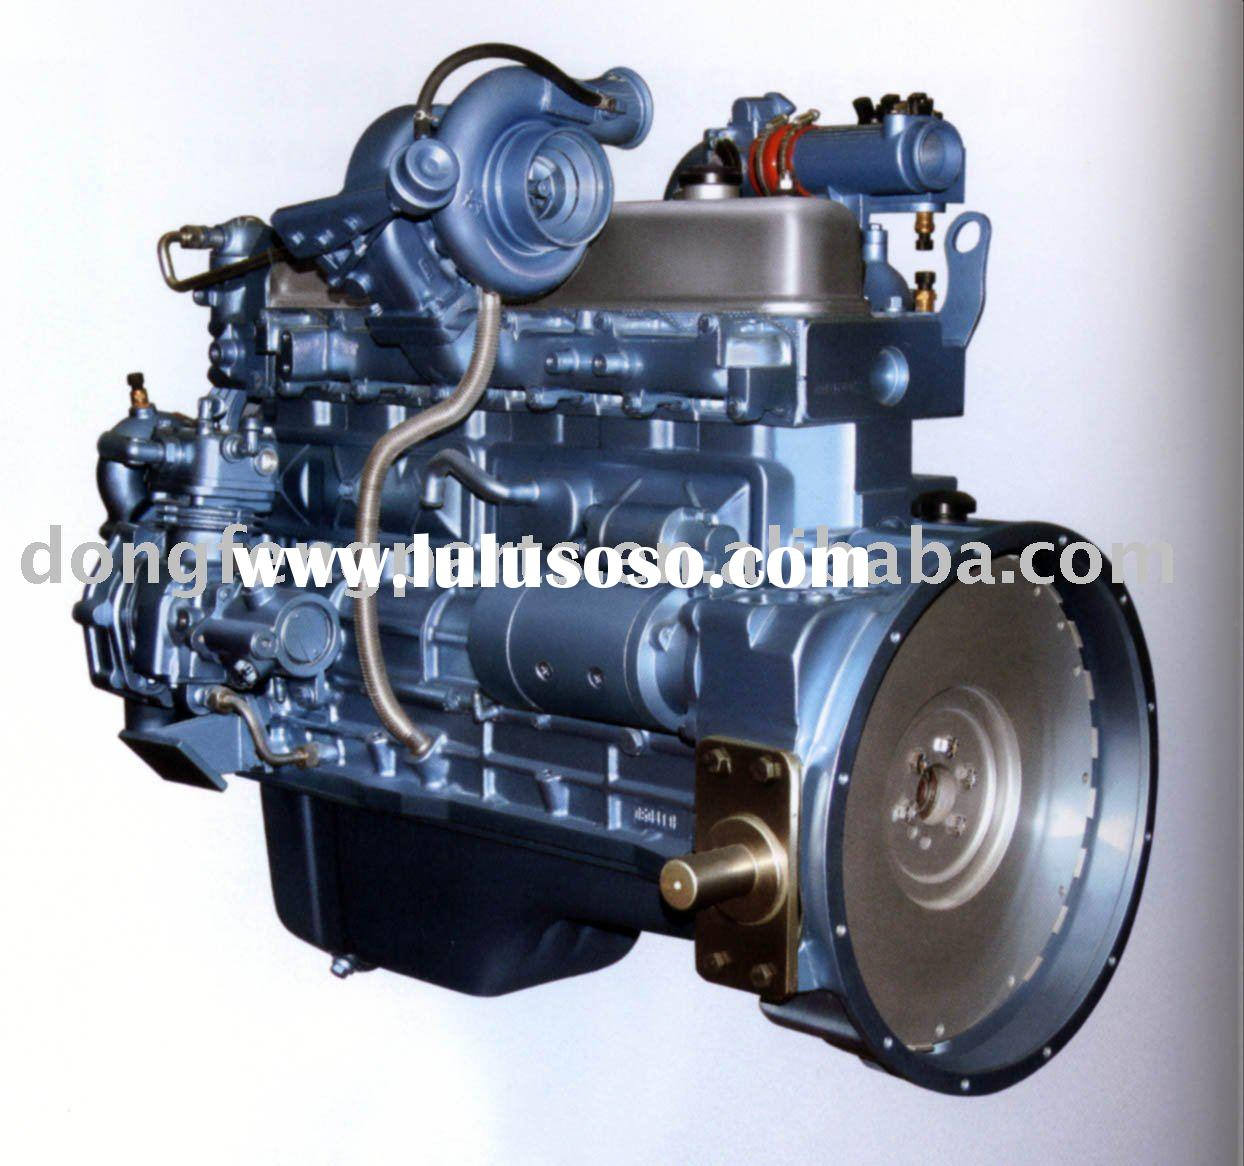 cummins natural gas engine for vehicle